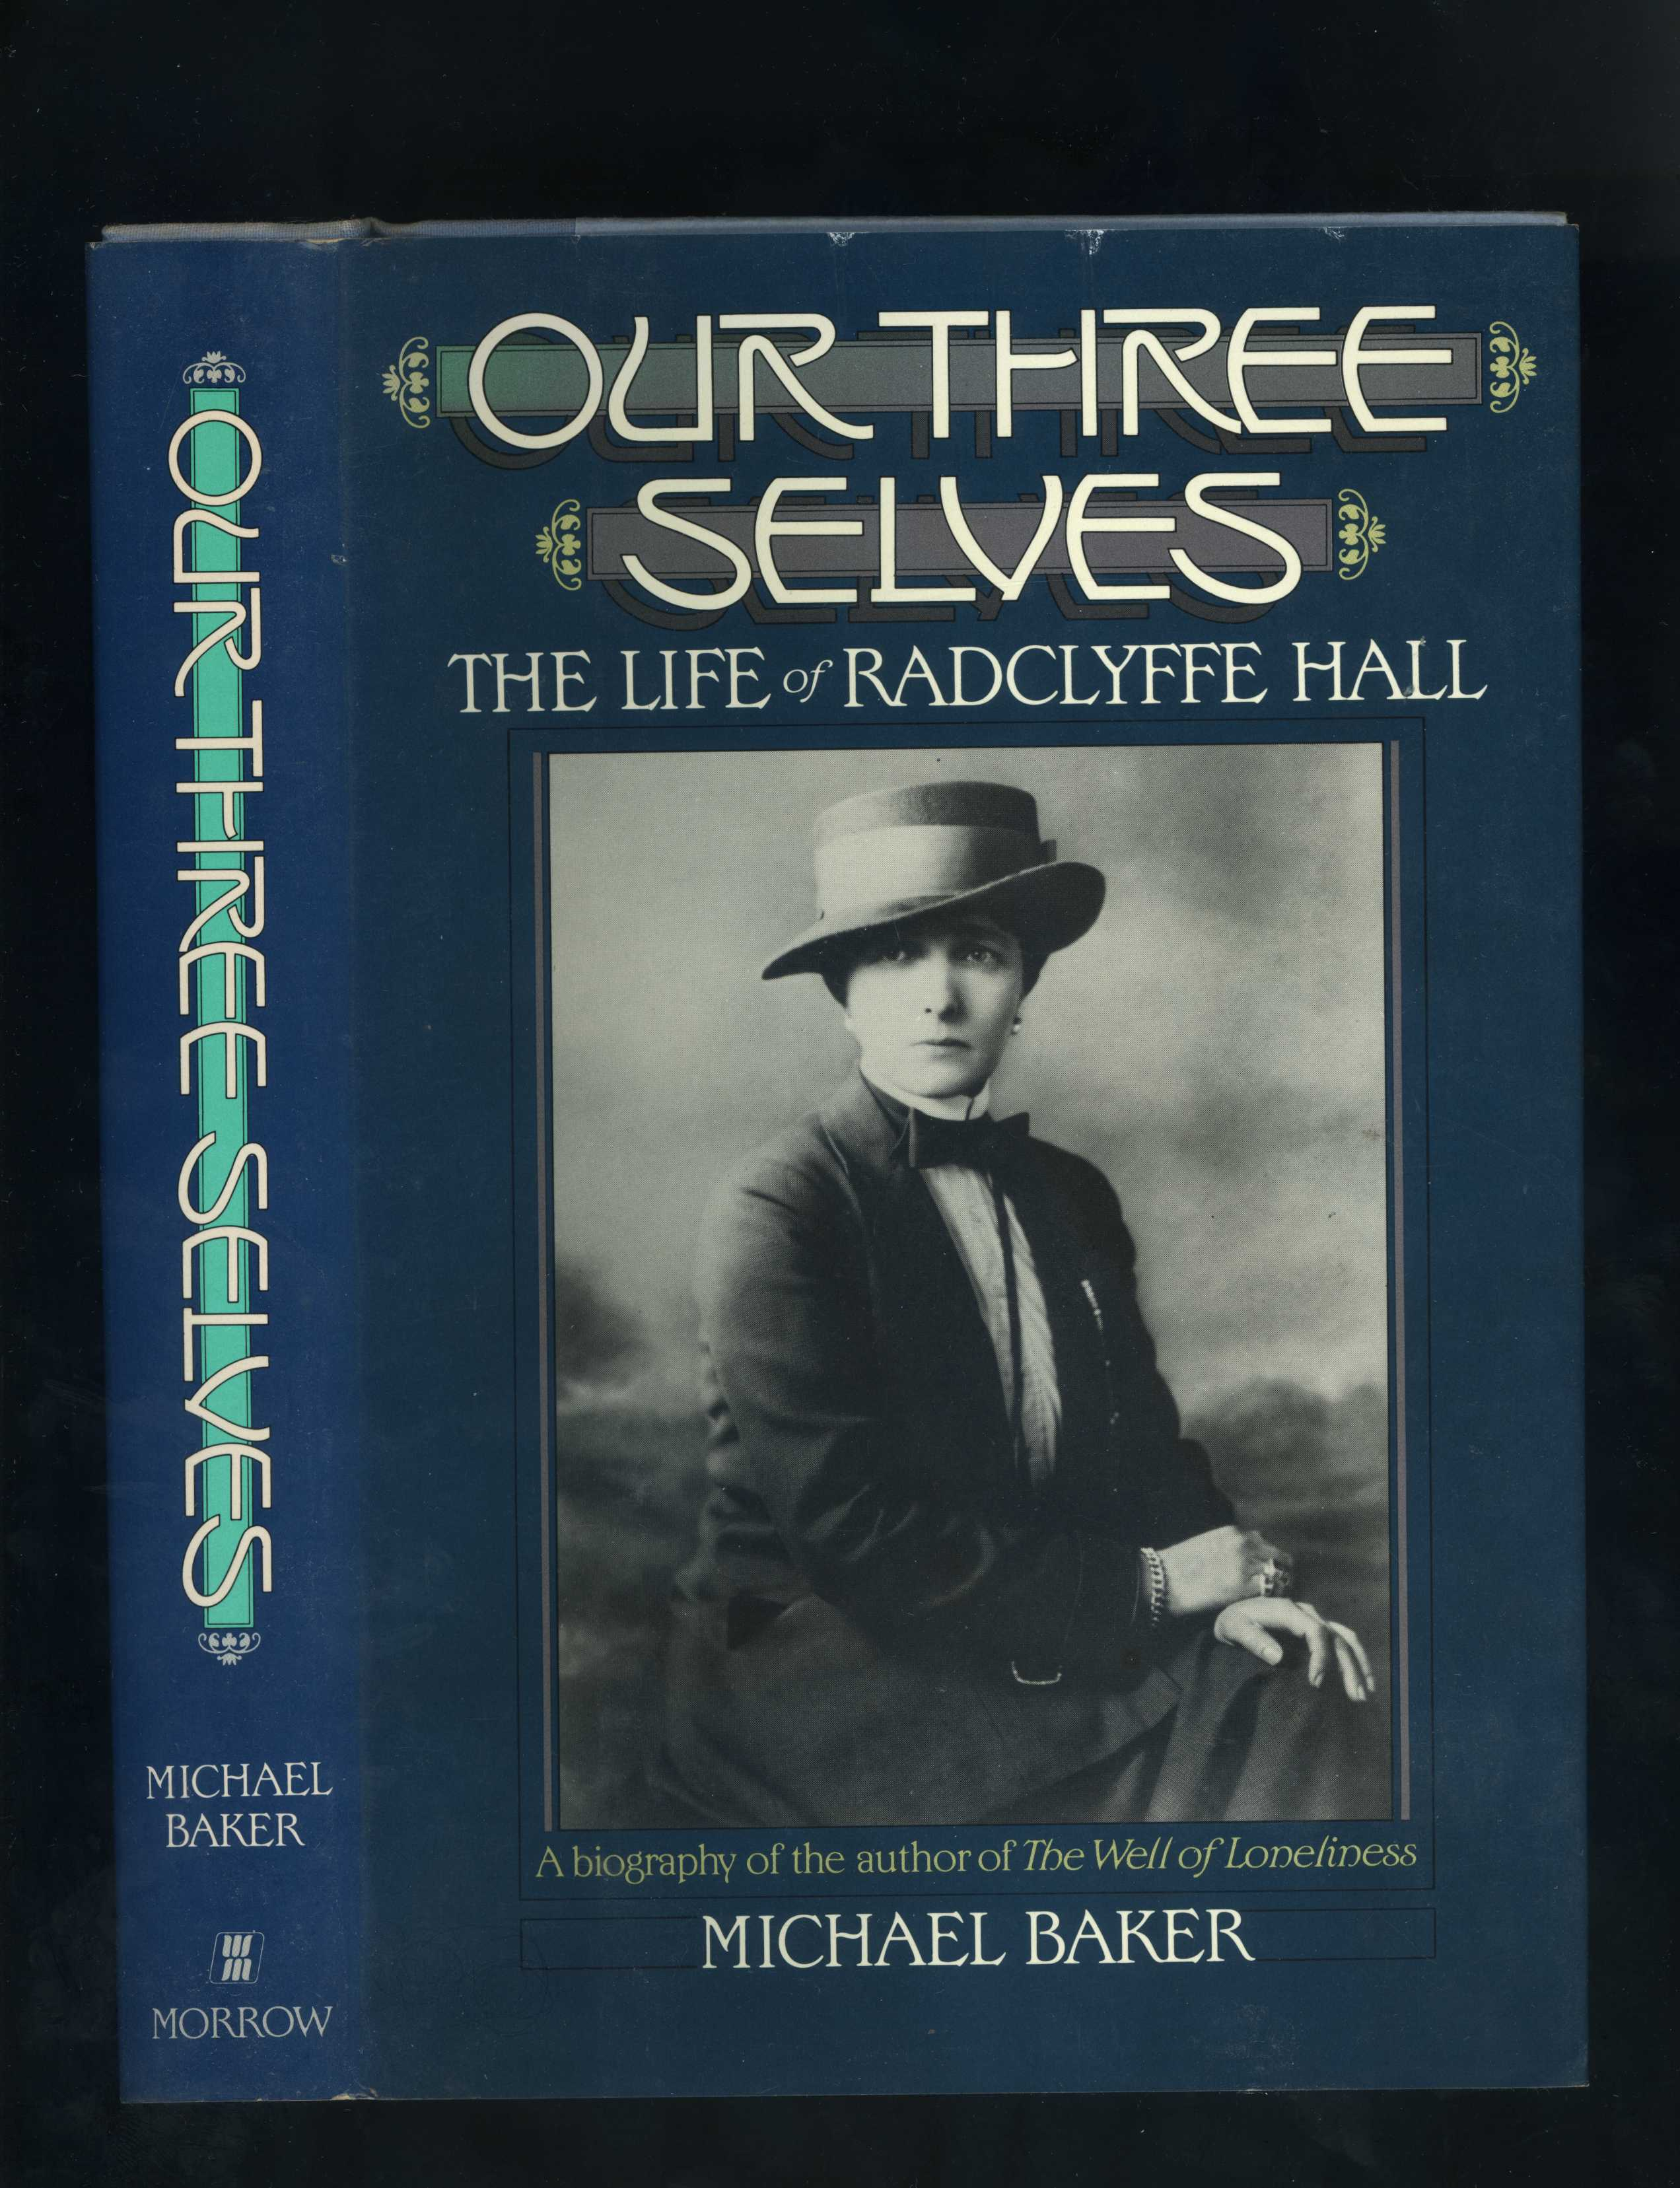 OUR THREE SELVES - THE LIFE OF RADCLYFFE HALL [A biography of the author of The Well of Loneliness] - Michael Baker